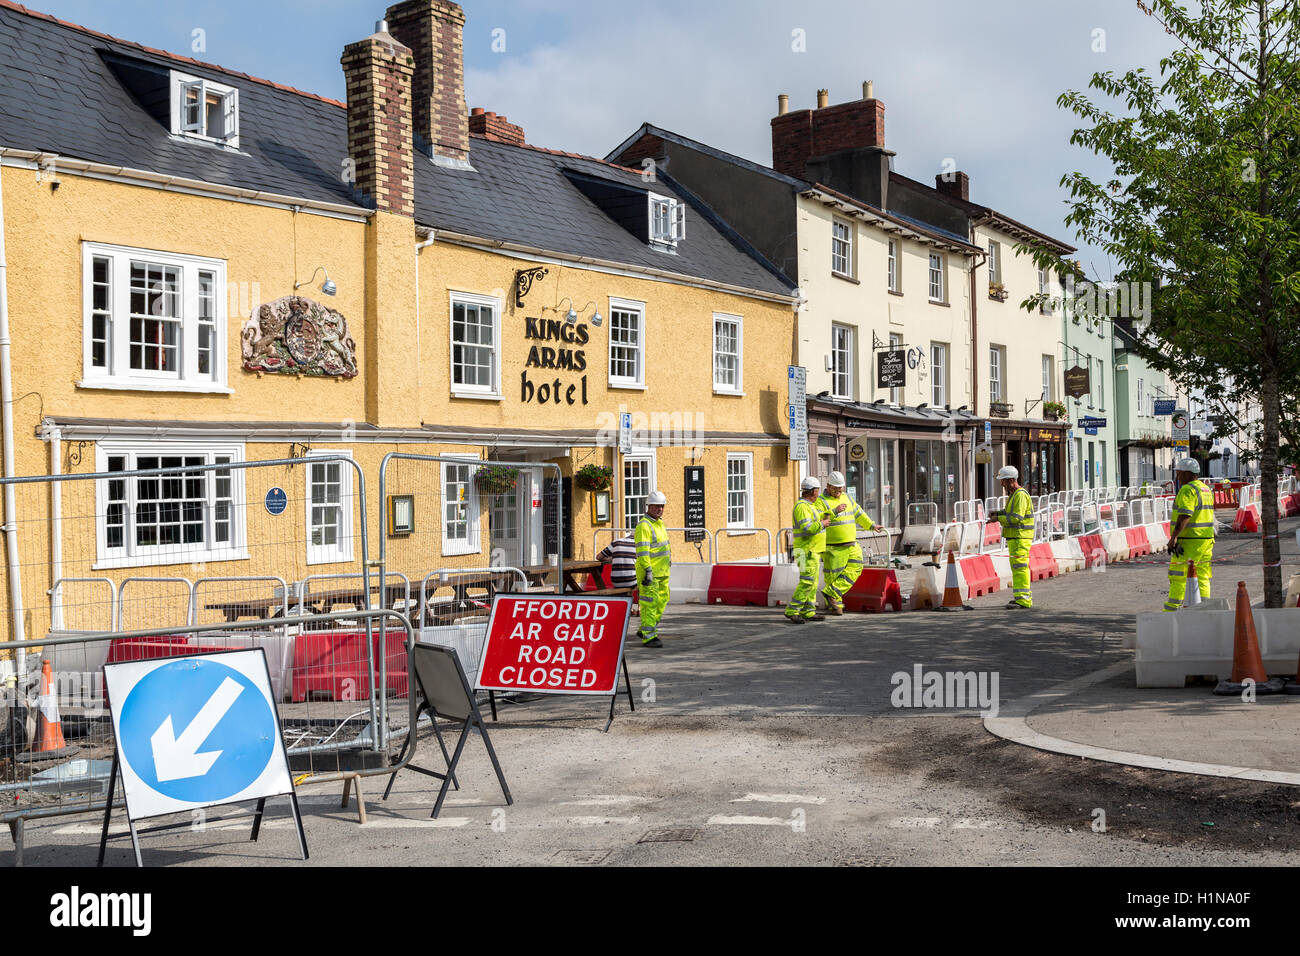 Workmen standing outside Kings Arms Hotel with road closed sign, Abergavenny, Wales, UK - Stock Image